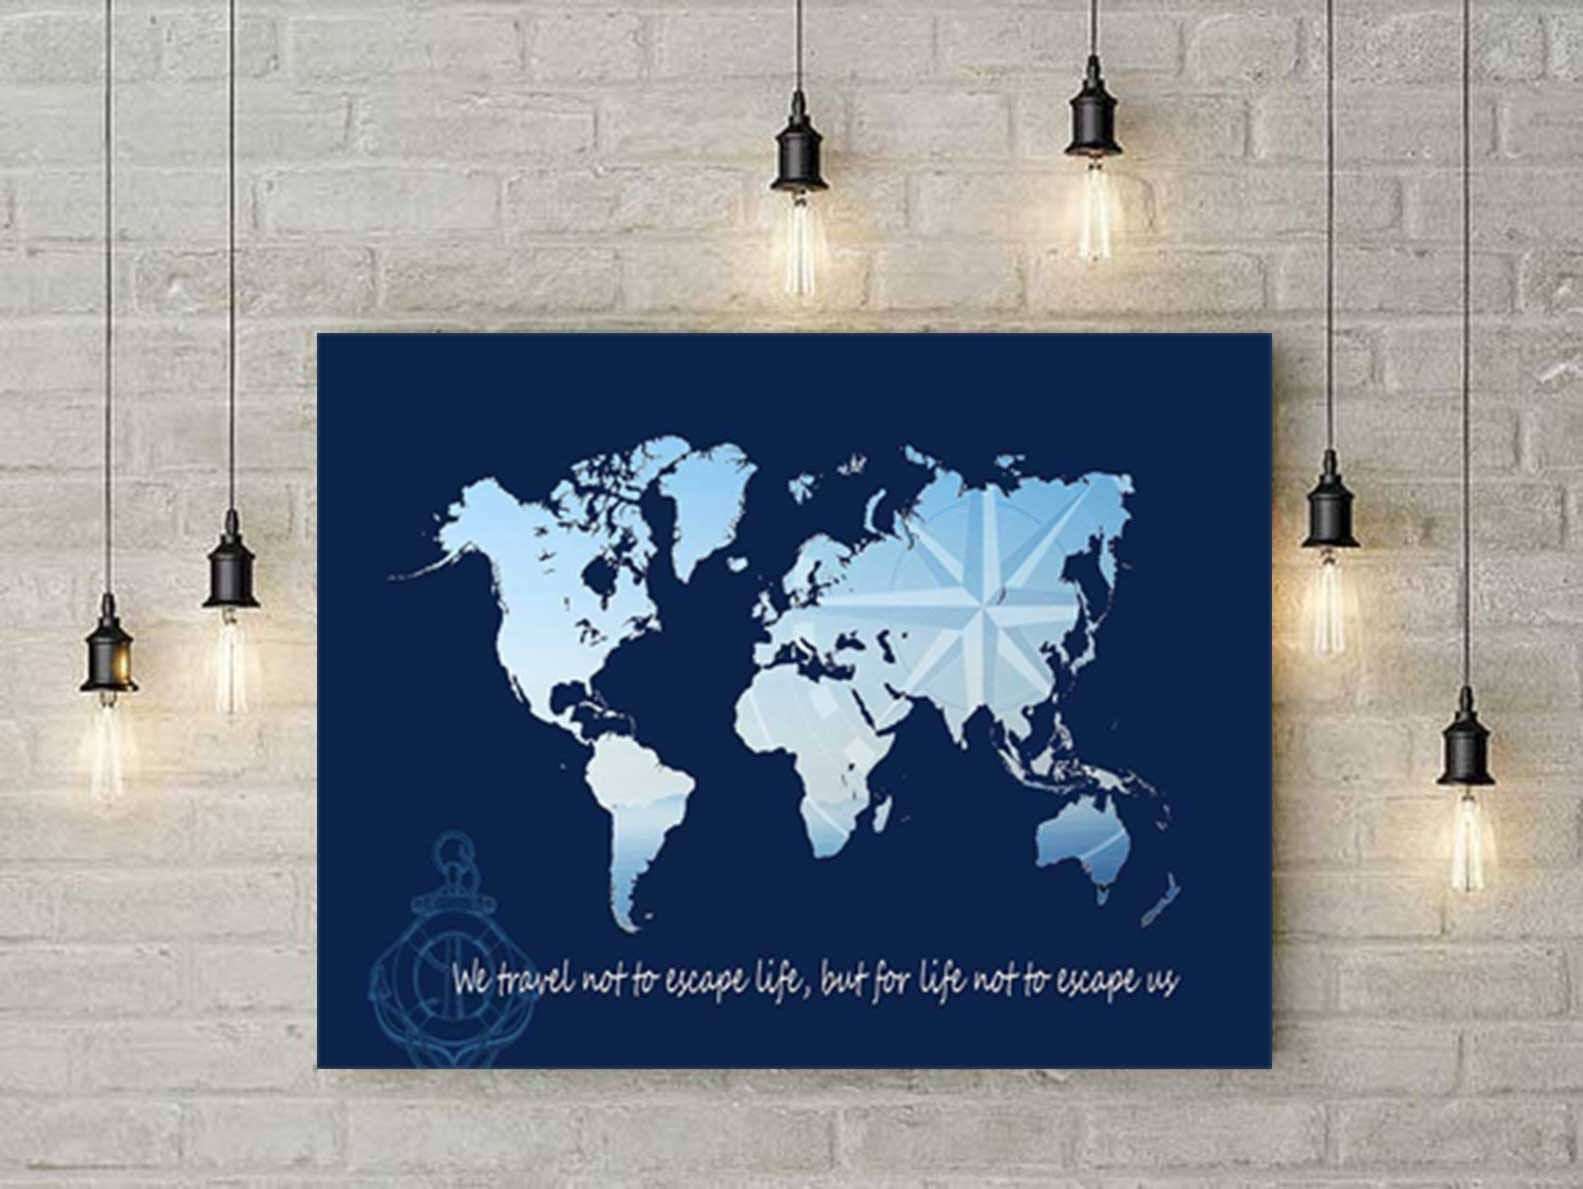 World map art map of the world world map poster inspiring quotes world map art map of the world world map poster inspiring quotes gumiabroncs Image collections